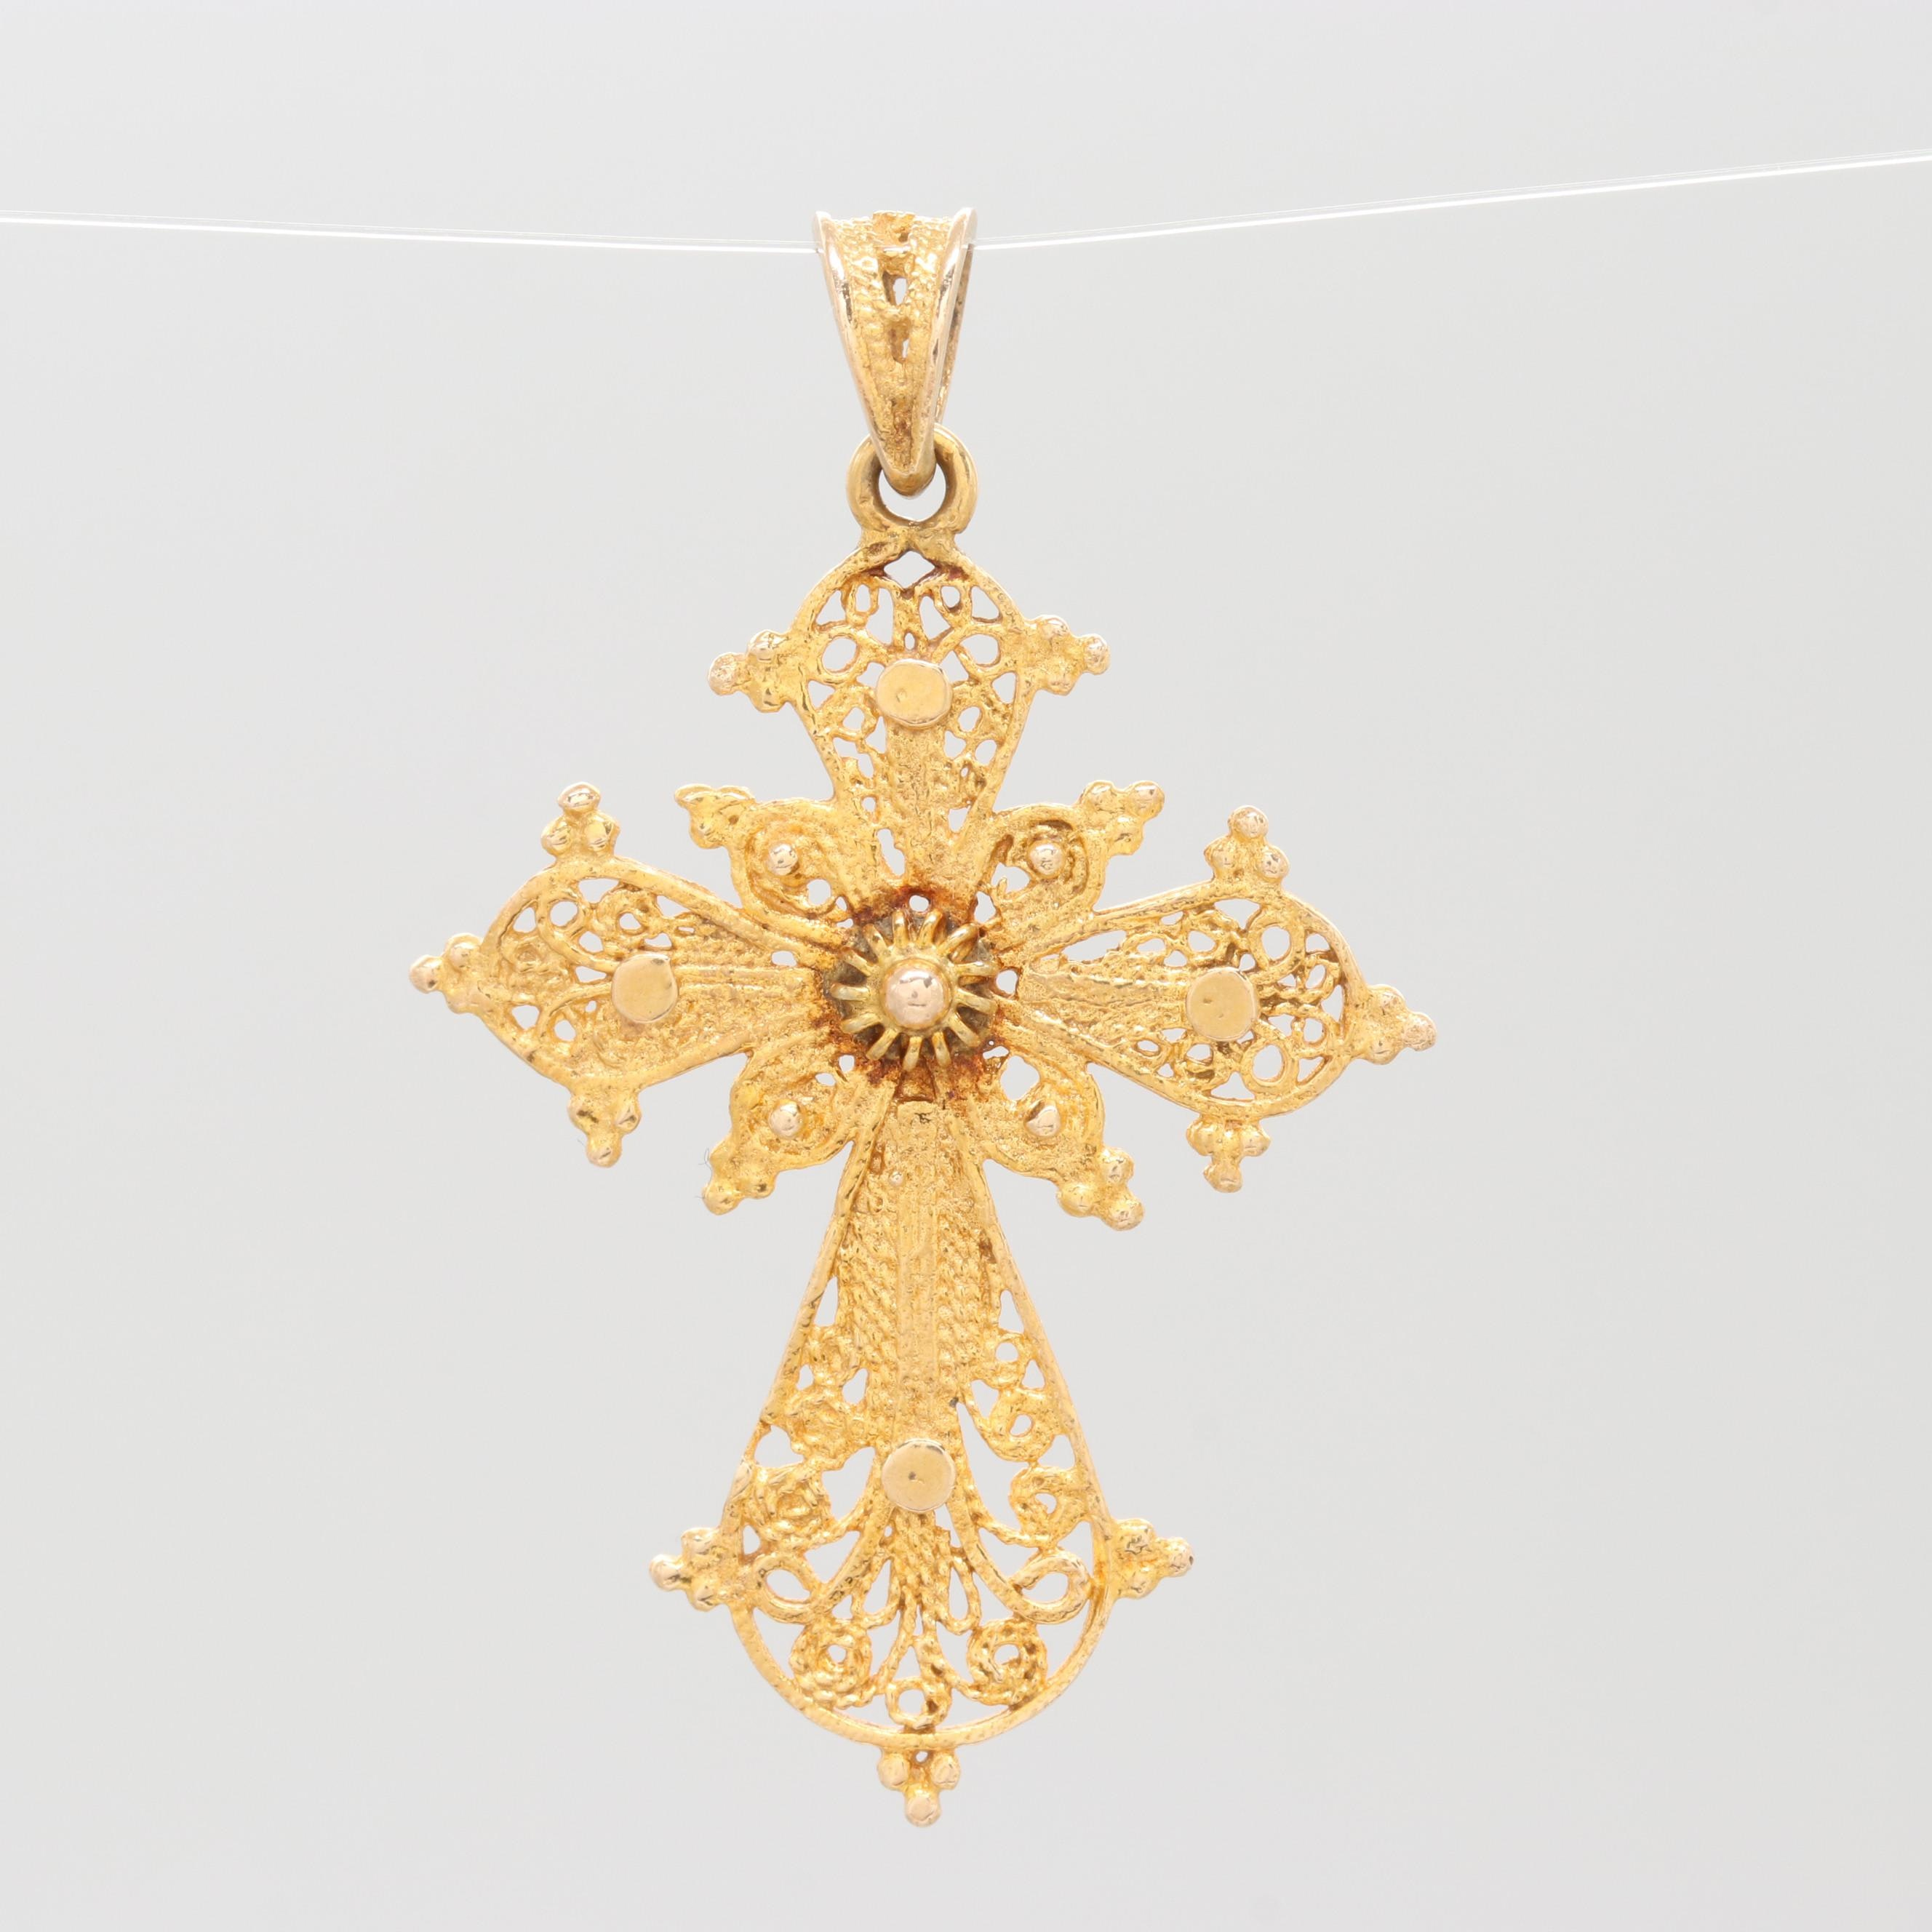 Etruscan Revival 14K Yellow Gold Cross Pendant